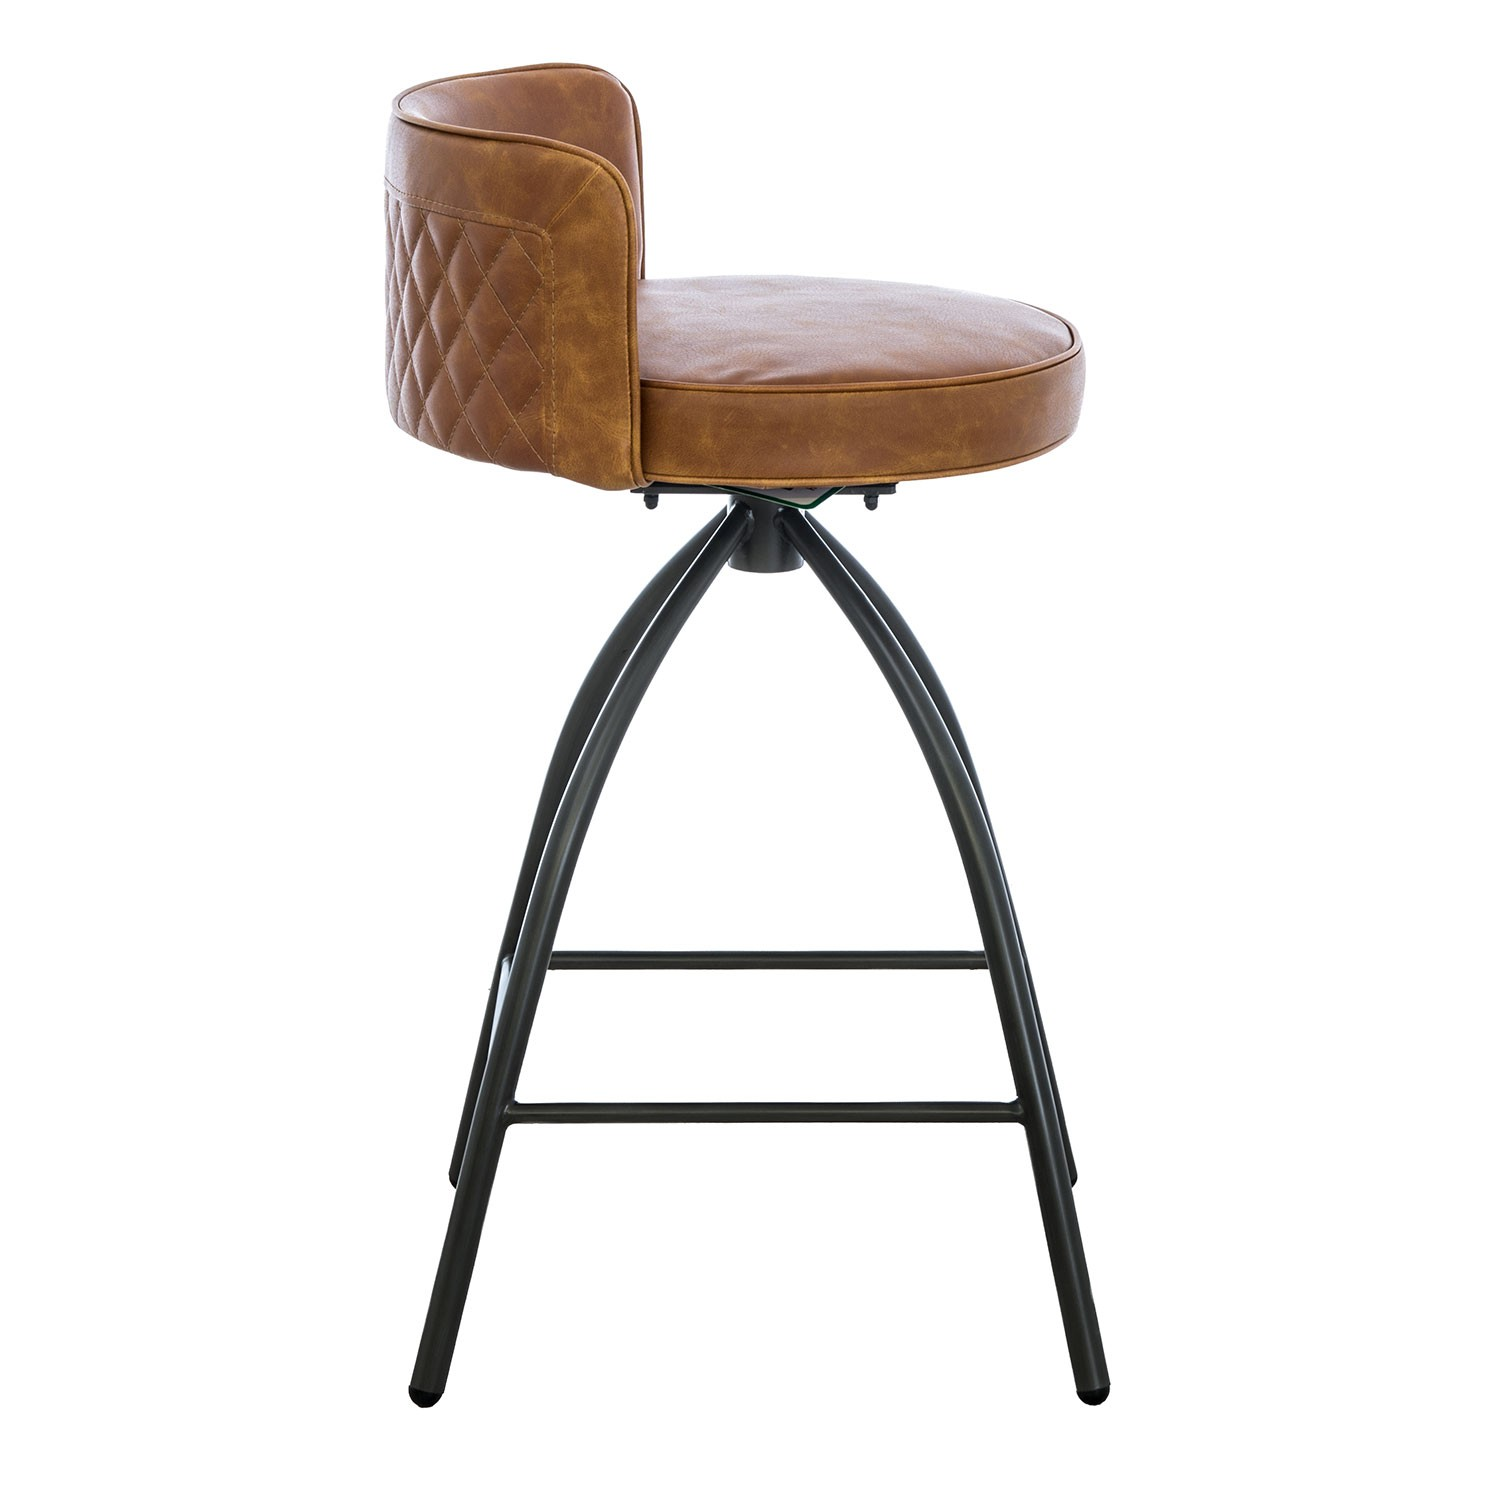 Hometrends Gas Lift Bar Stool Image 1 Of 2